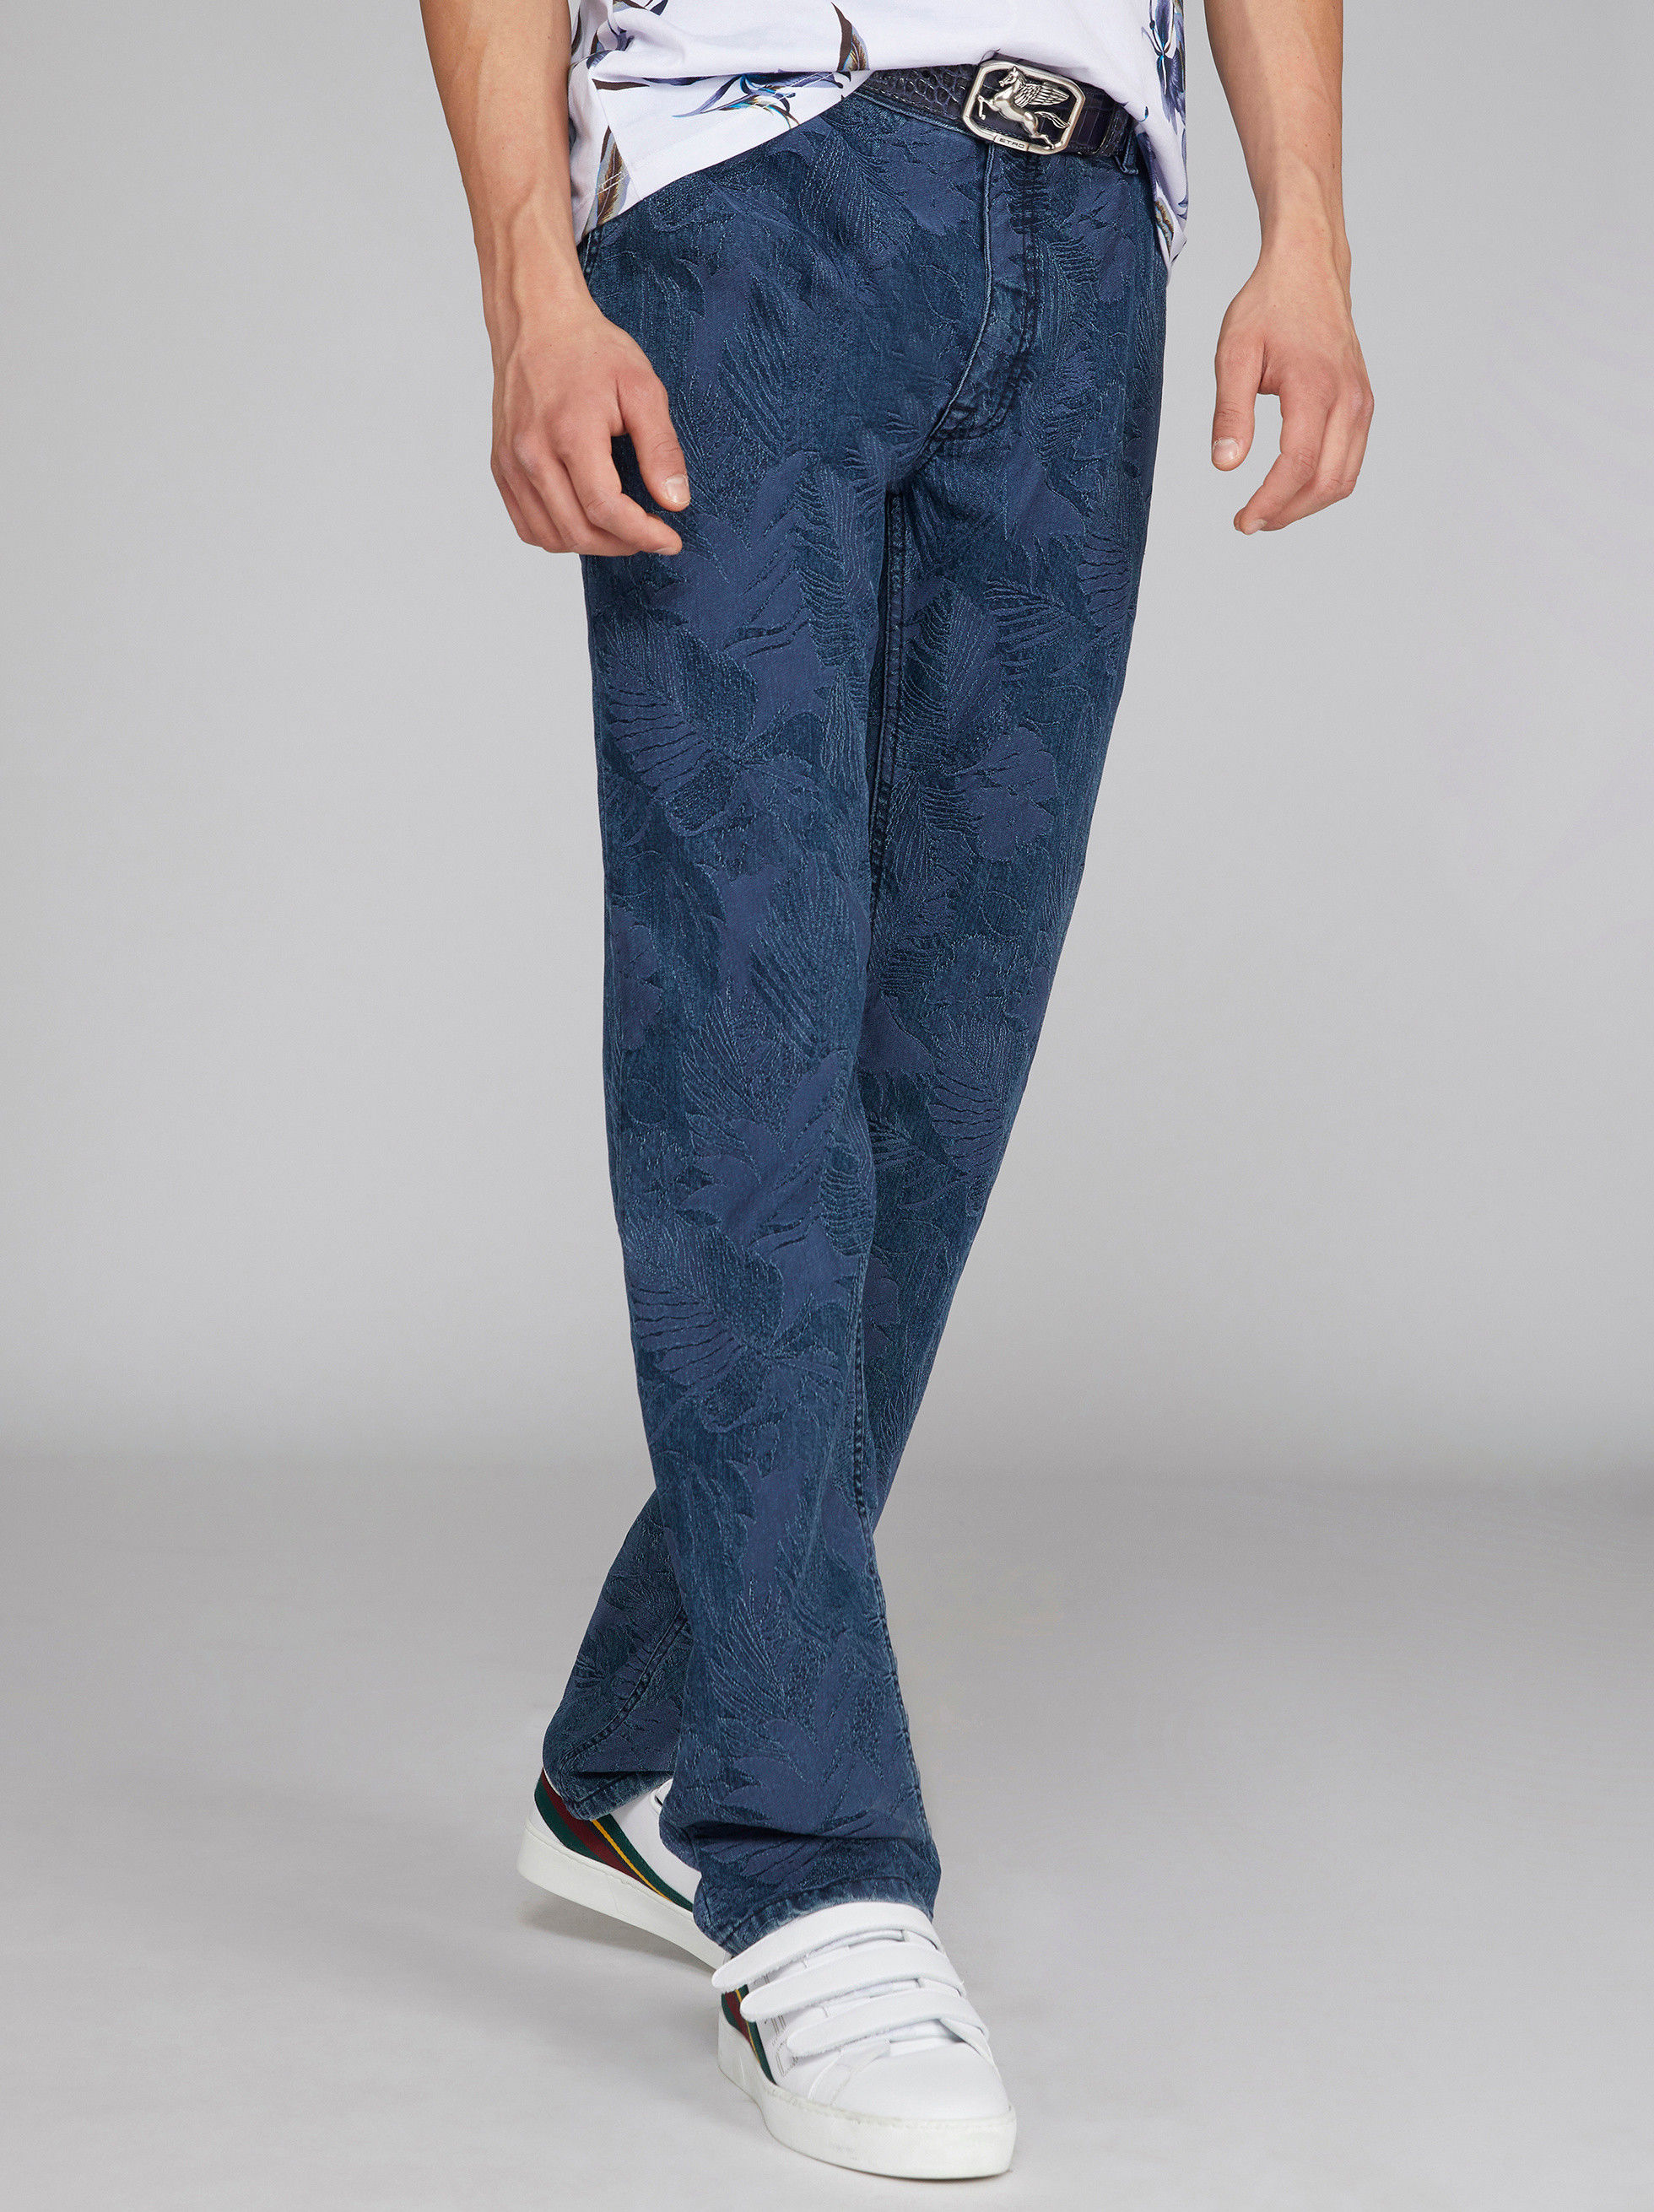 JACQUARD DENIM CHINO TROUSERS